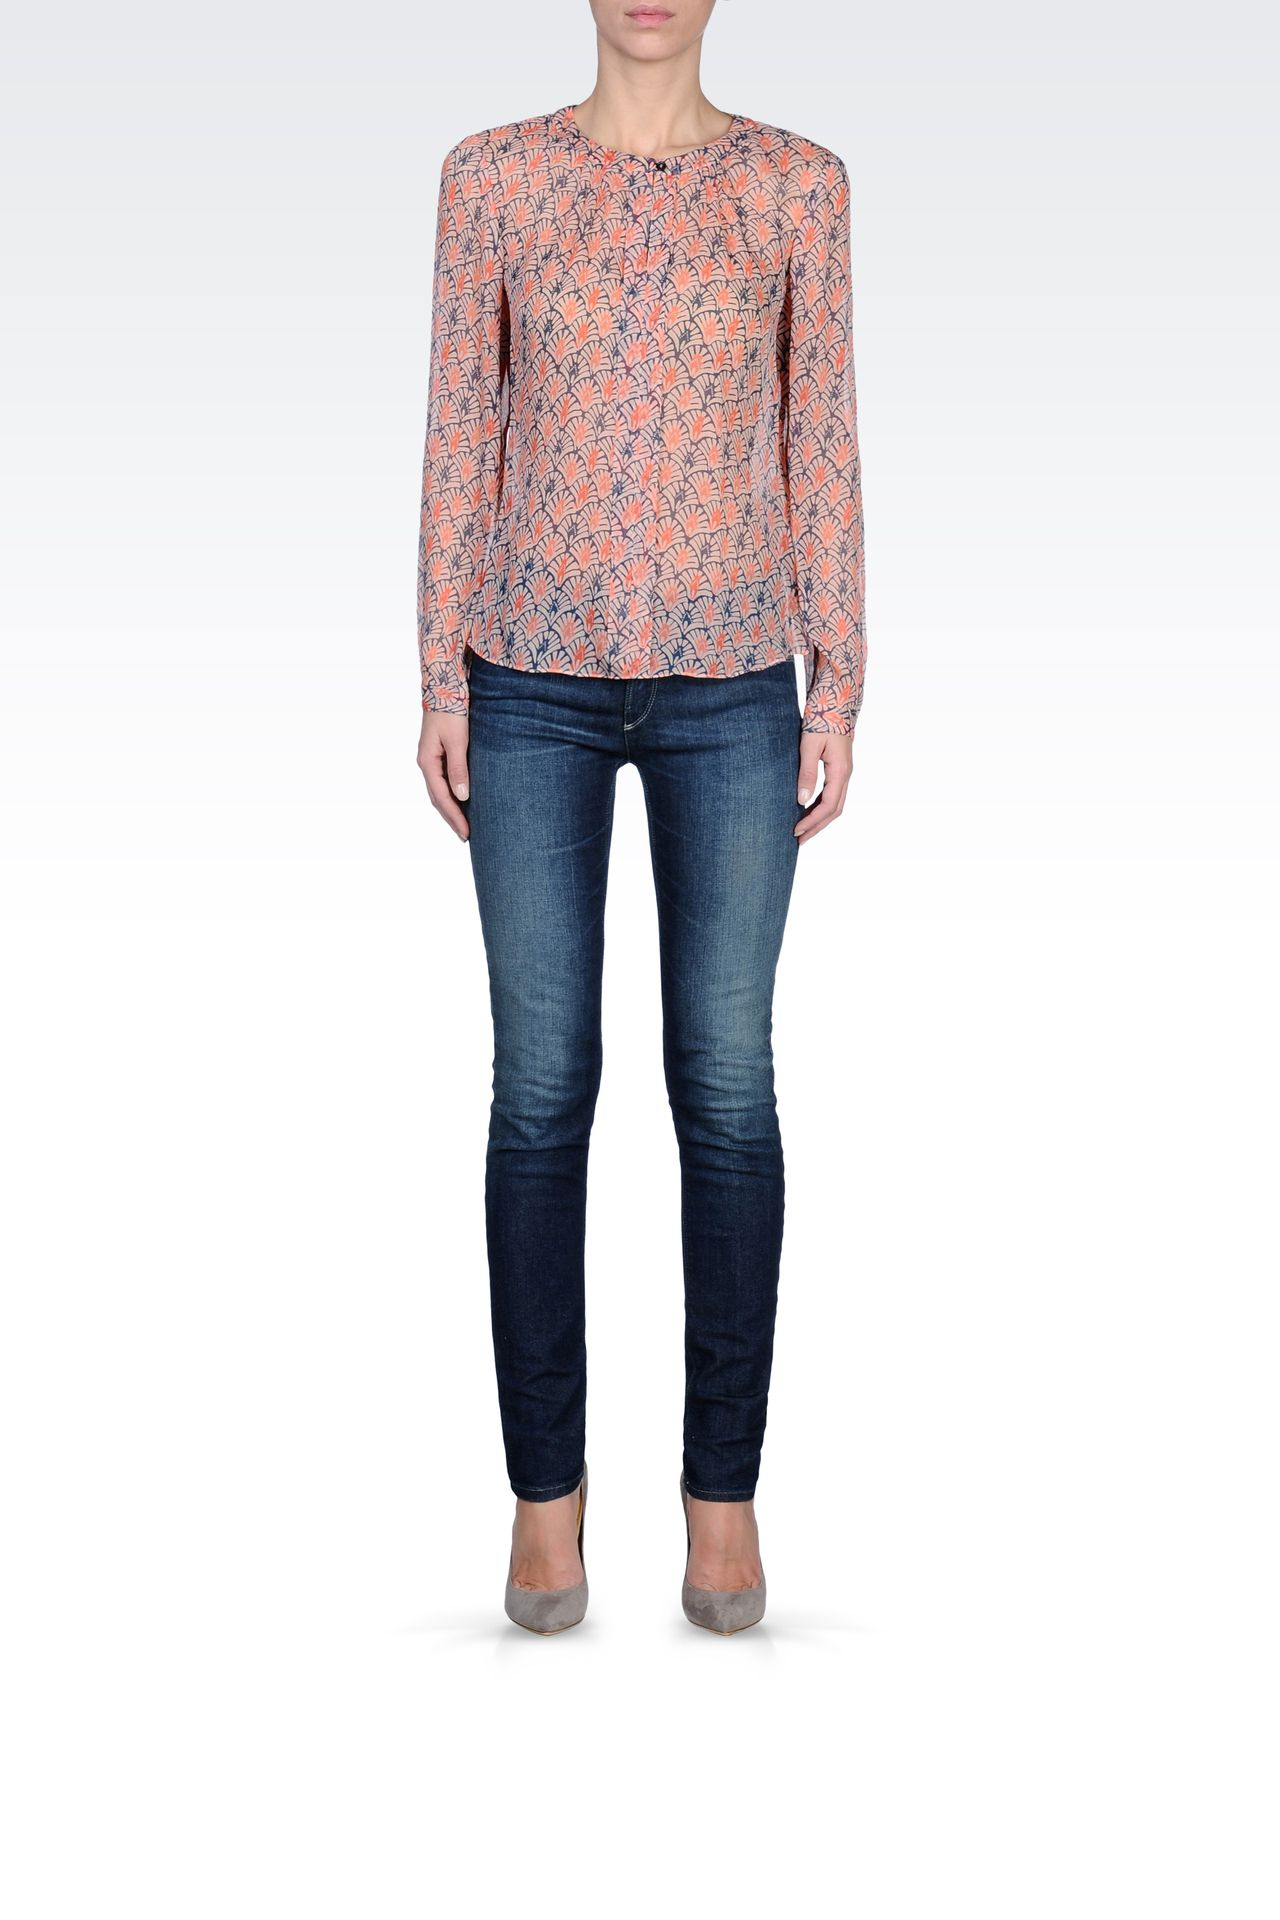 CRÊPE SILK BLOUSE WITH FLORAL PRINT: Blouses Women by Armani - 0